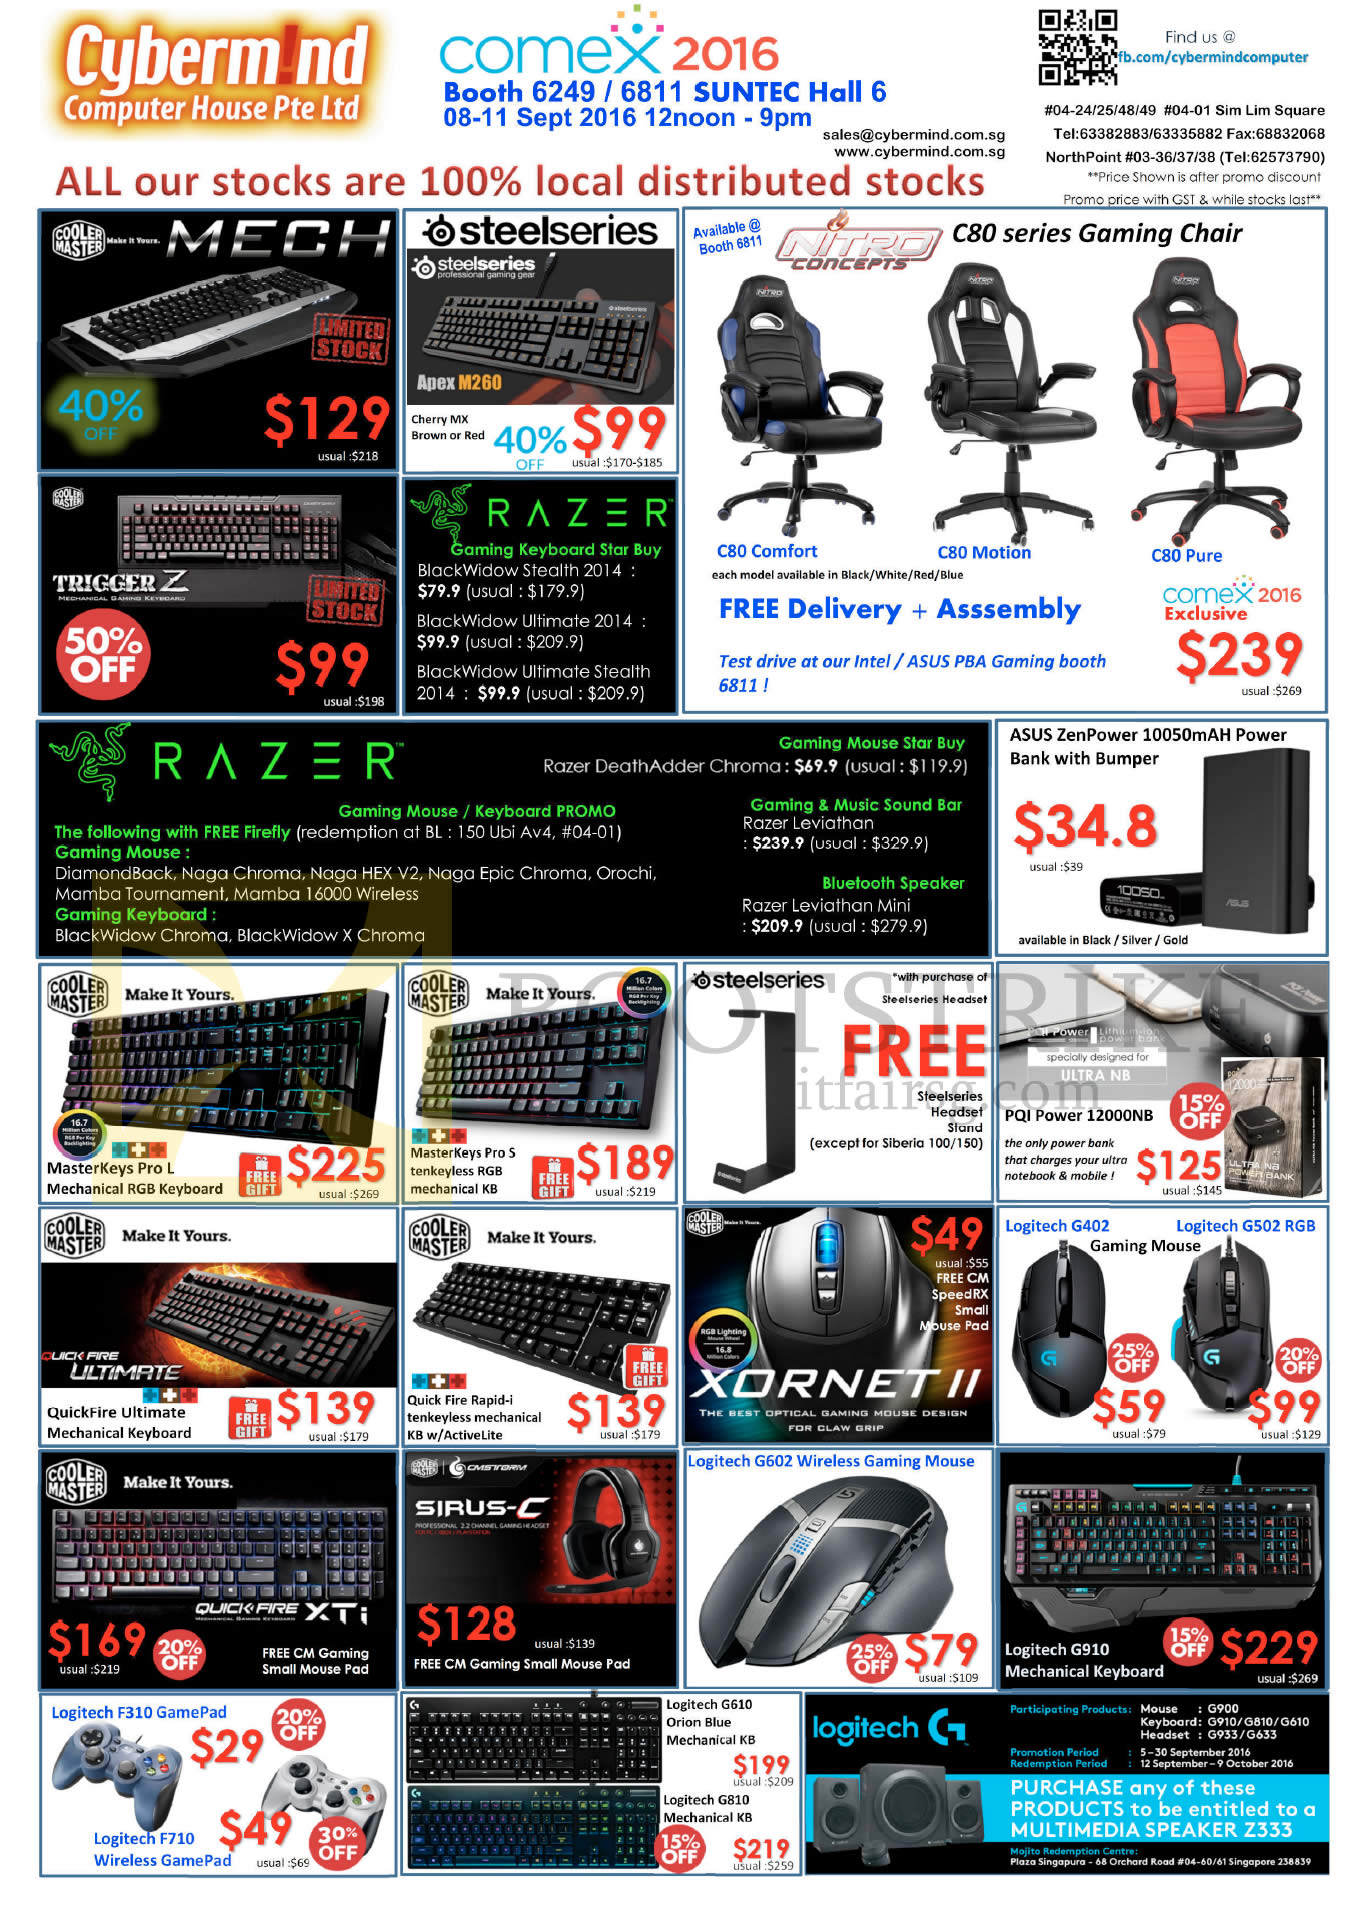 COMEX 2016 price list image brochure of Cybermind Keyboards, Gaming Chairs, Mouse, Headsets, GamePad, Speaker, Razer, Cooler Master, Steelseries